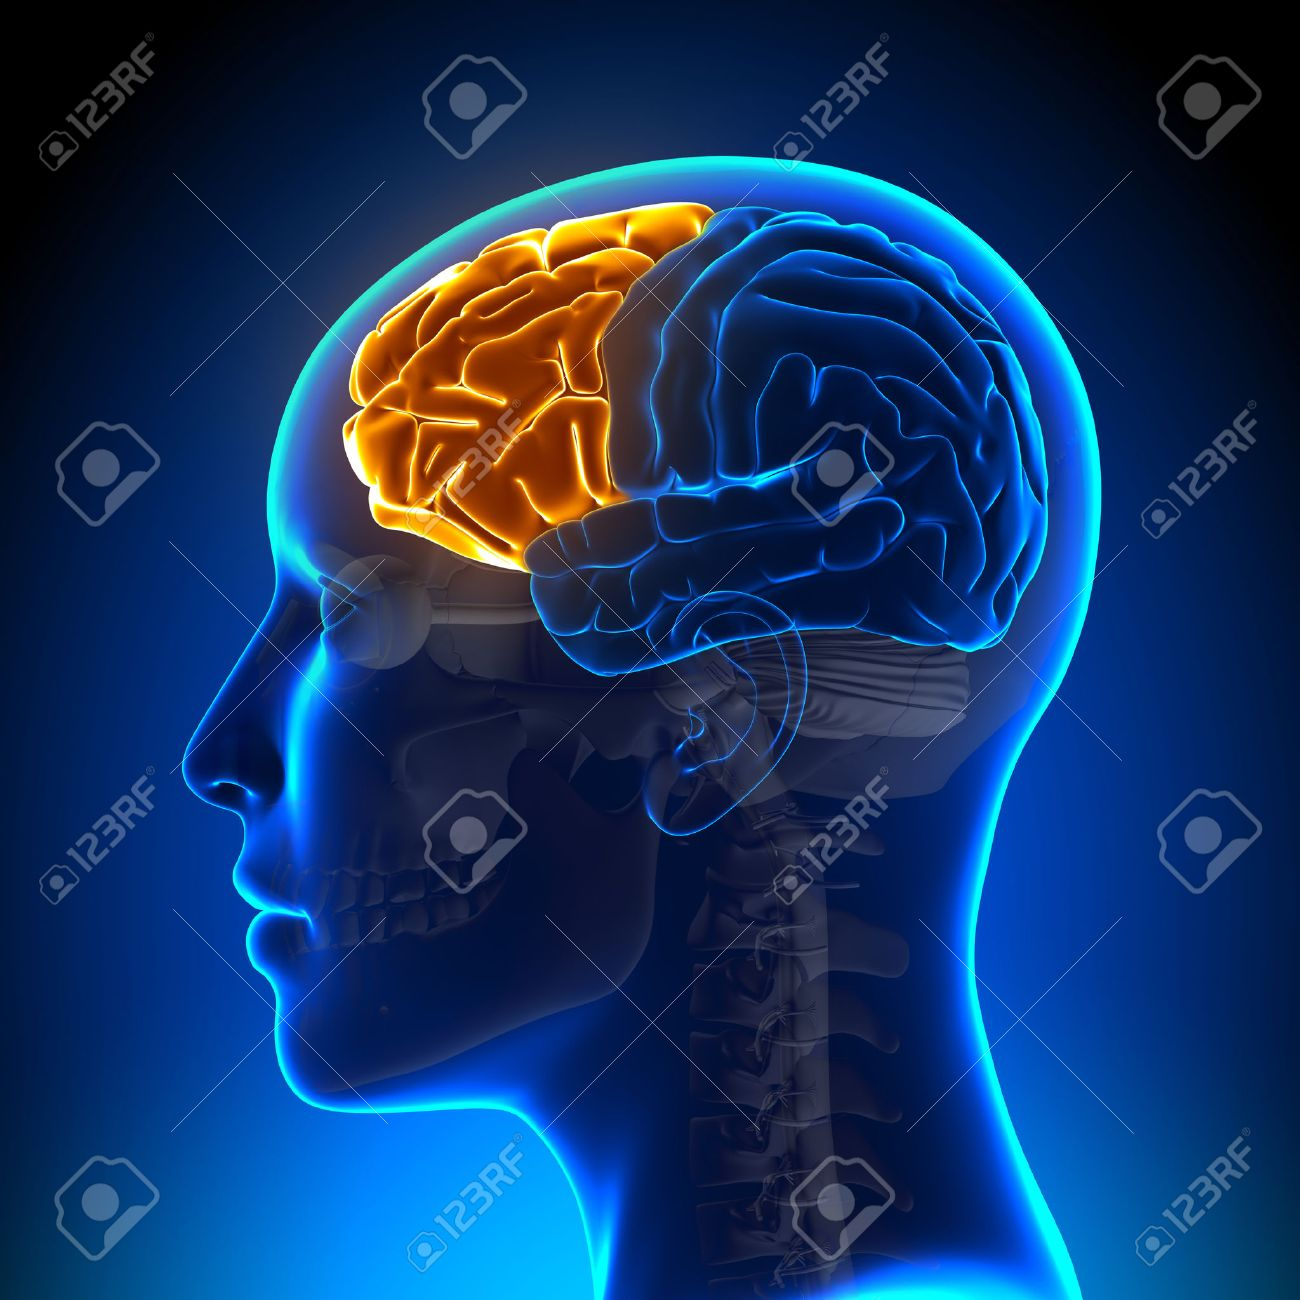 Female Frontal Lobe - Anatomy Brain Stock Photo, Picture And Royalty ...